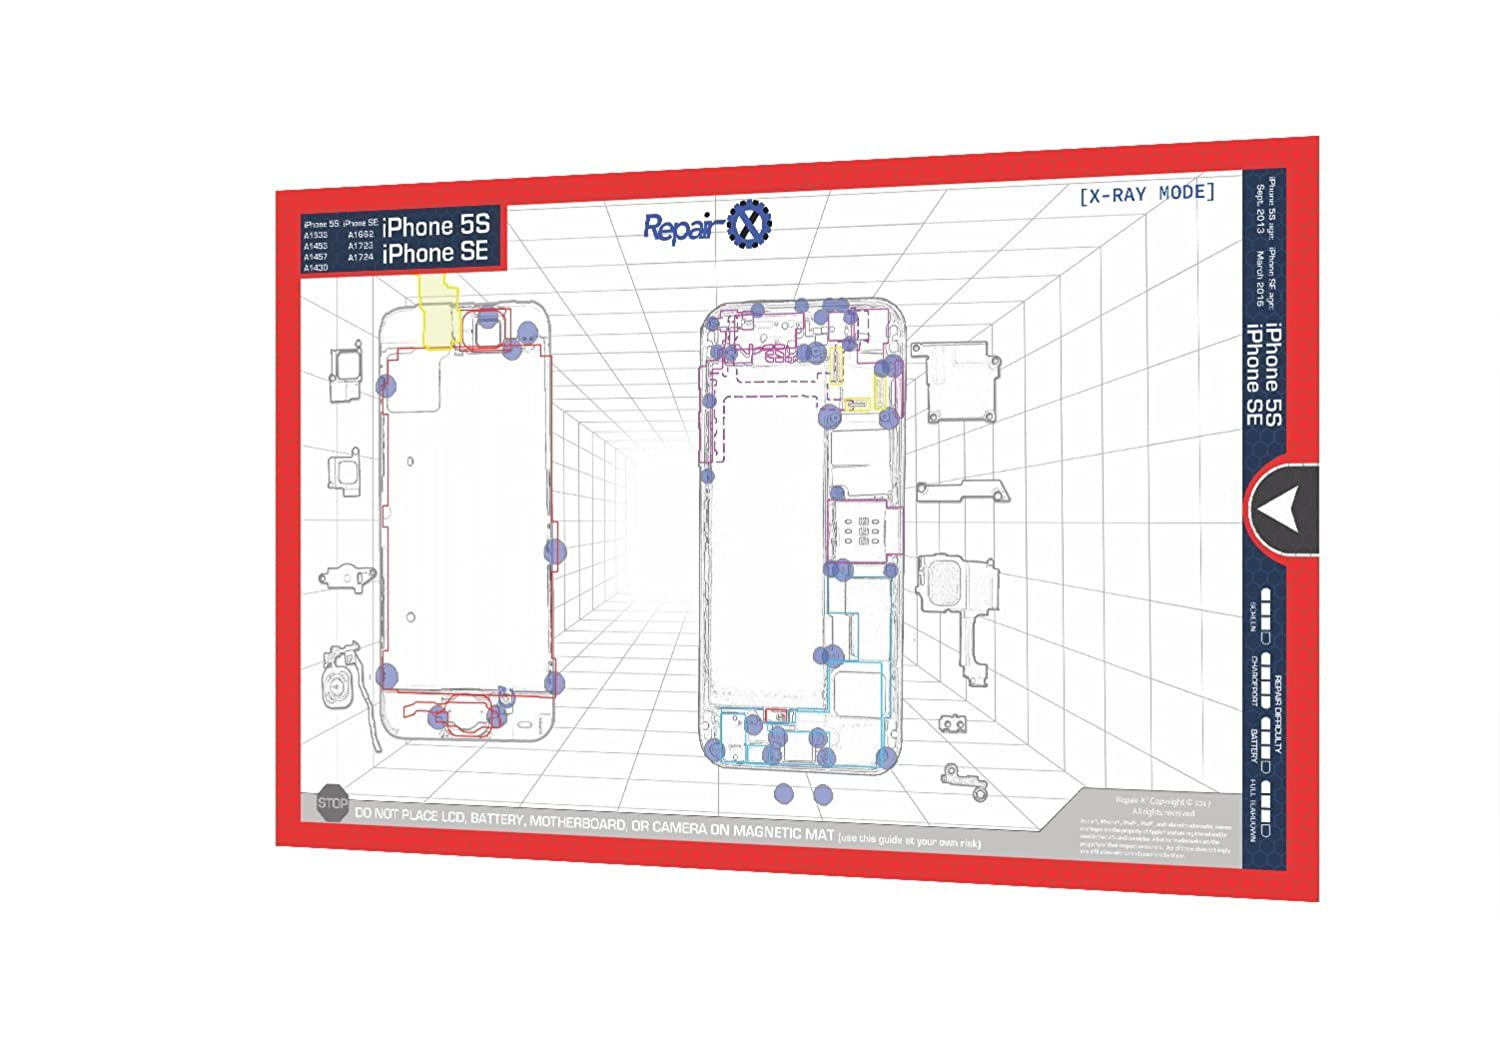 Camera Iphone 5 Schematic Electrical Wiring Diagrams Circuit Diagram Pictures Amazon Com Repair X Apple 5s Se Card Internal